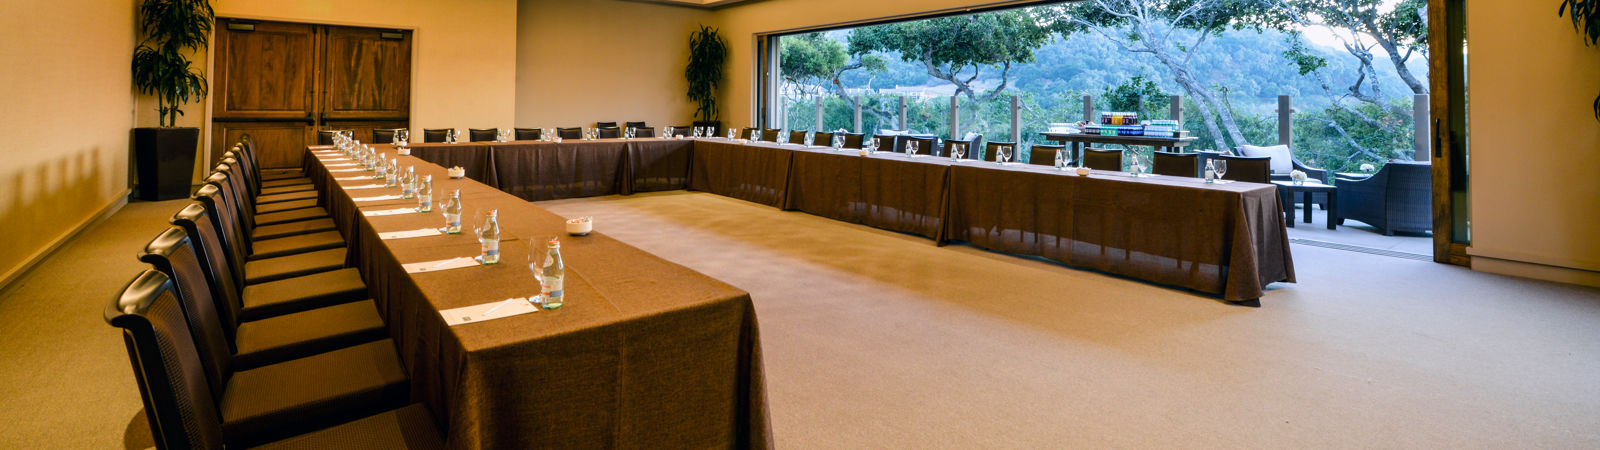 Carmel Valley Ranch_Meetings_Vintner Room U-shape open face